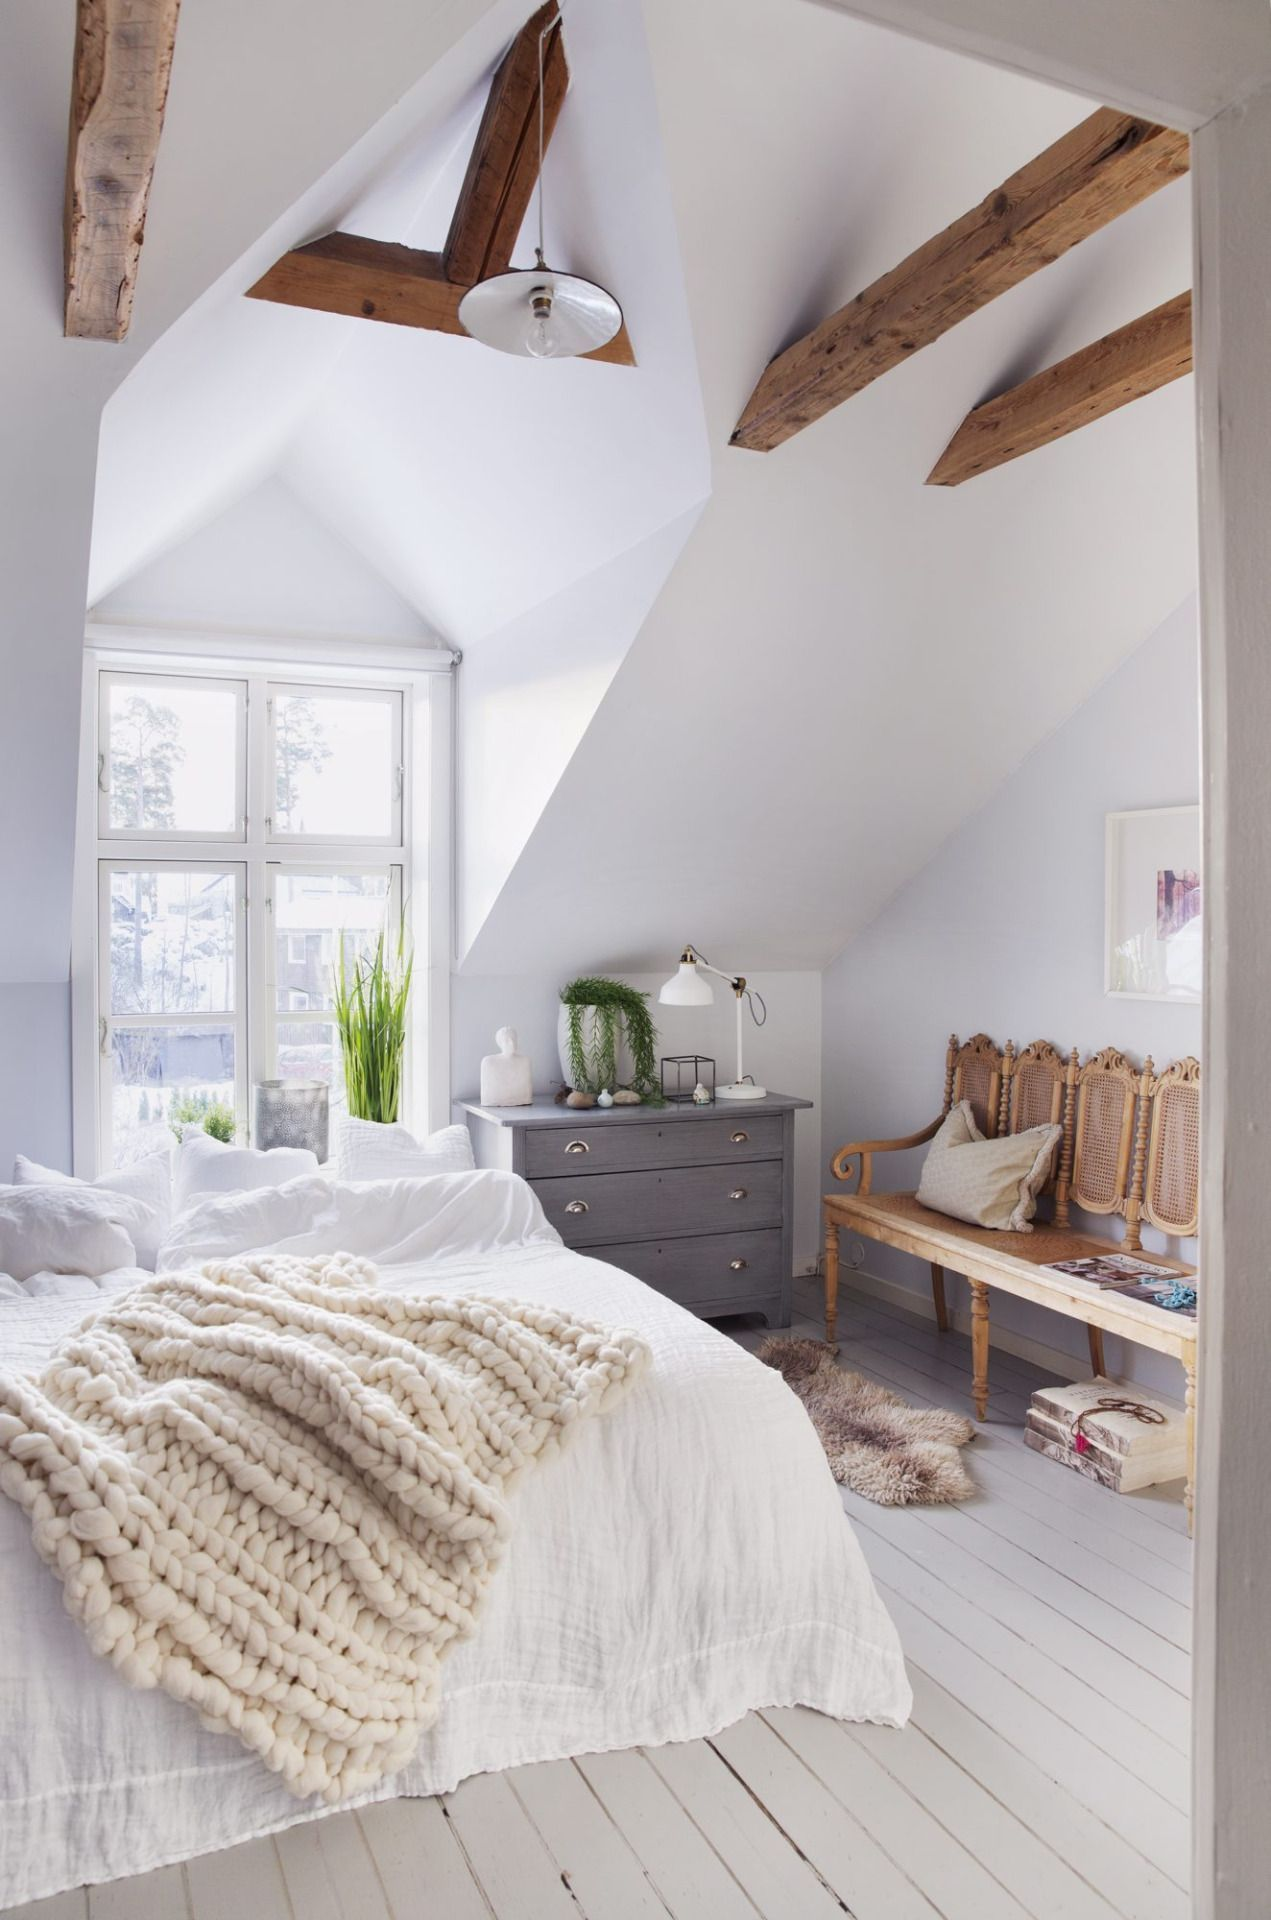 Attic Ideas Find Inspiration For Bedroom Ideas Storage Rooms Master Diy To Add To Your Home Small Atti Home Decor Bedroom Serene Bedroom Attic Bedroom Decor Popular inspiration attic bedroom